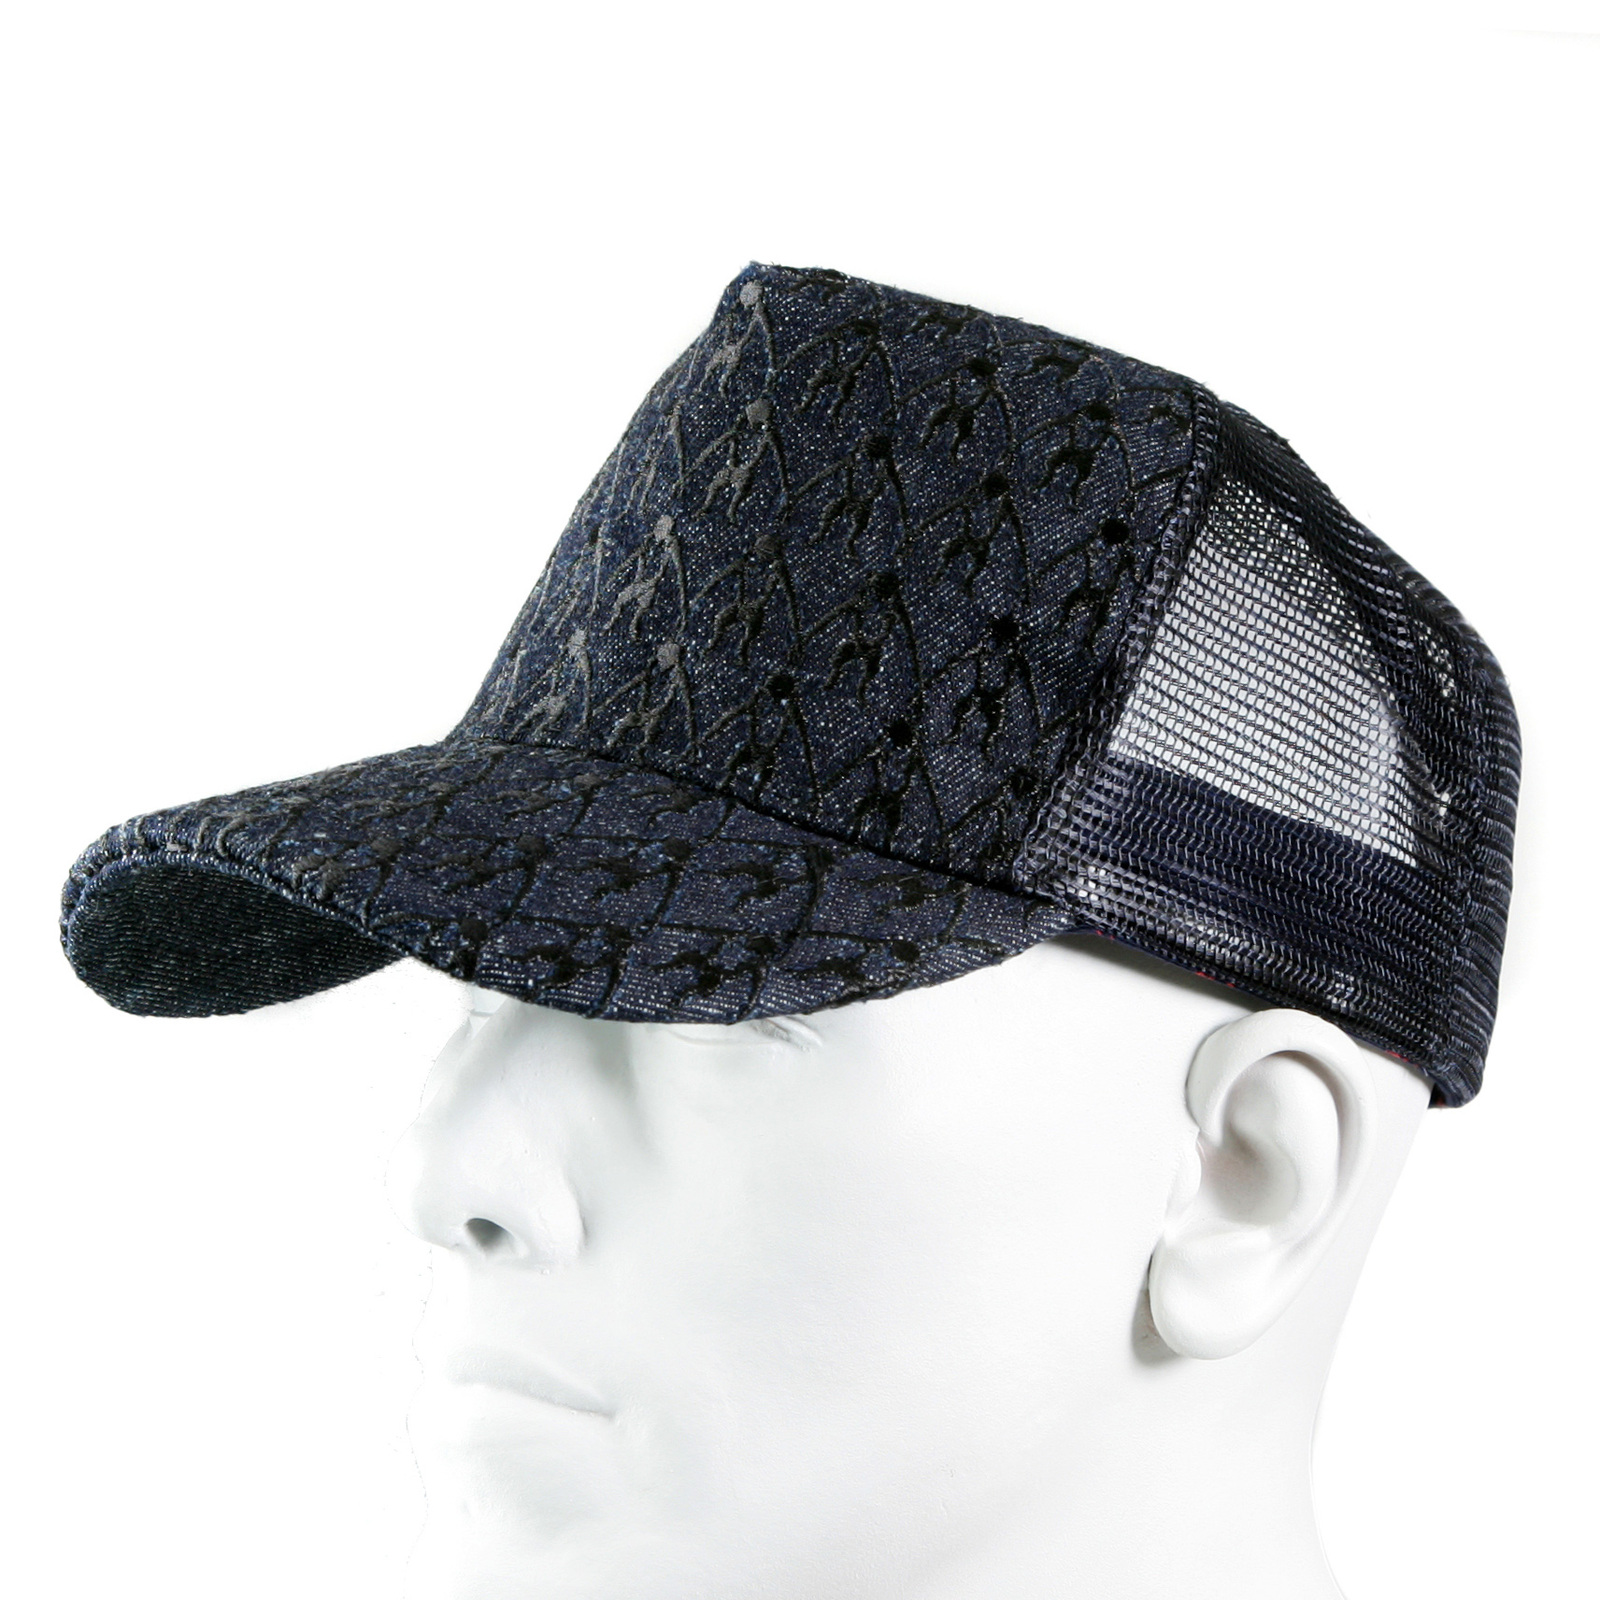 6a8853ab6dc RMC Jeans Black Embroidered Logo Cap with Black Mesh for Men REDM9099